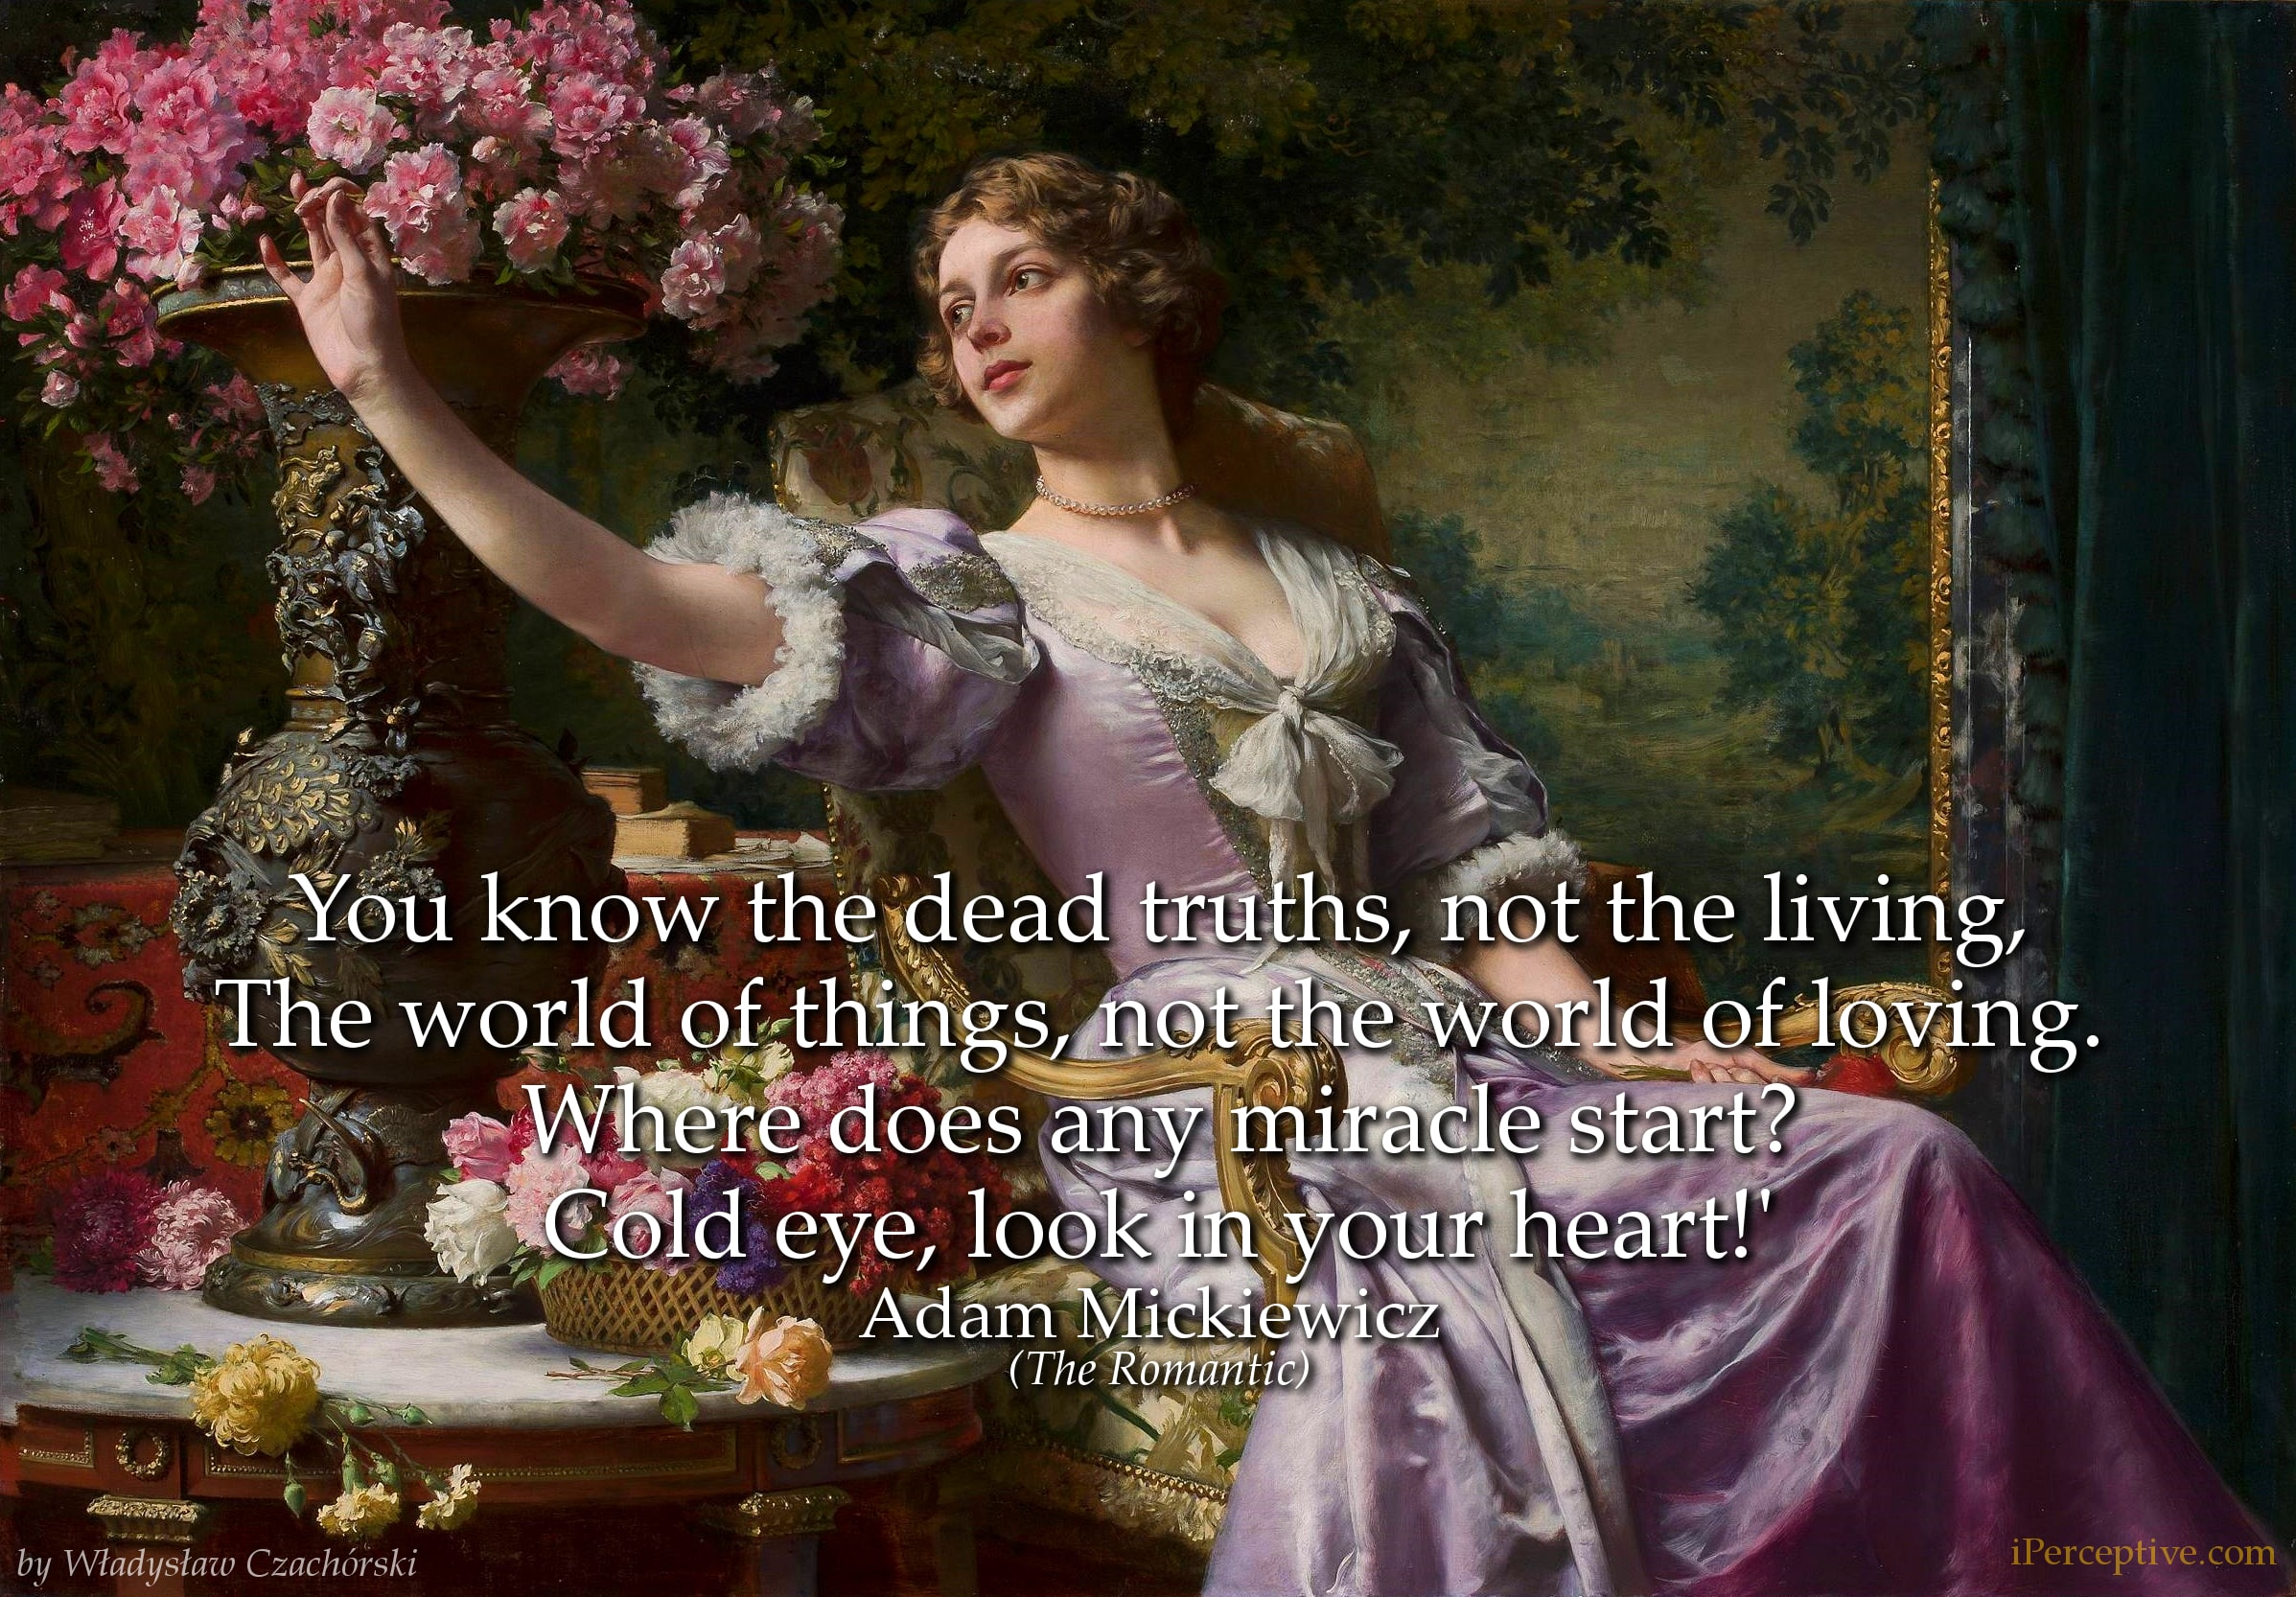 Adam Mickiewicz Quote: You know the dead truths, not the living, the world of things, not the world of loving....